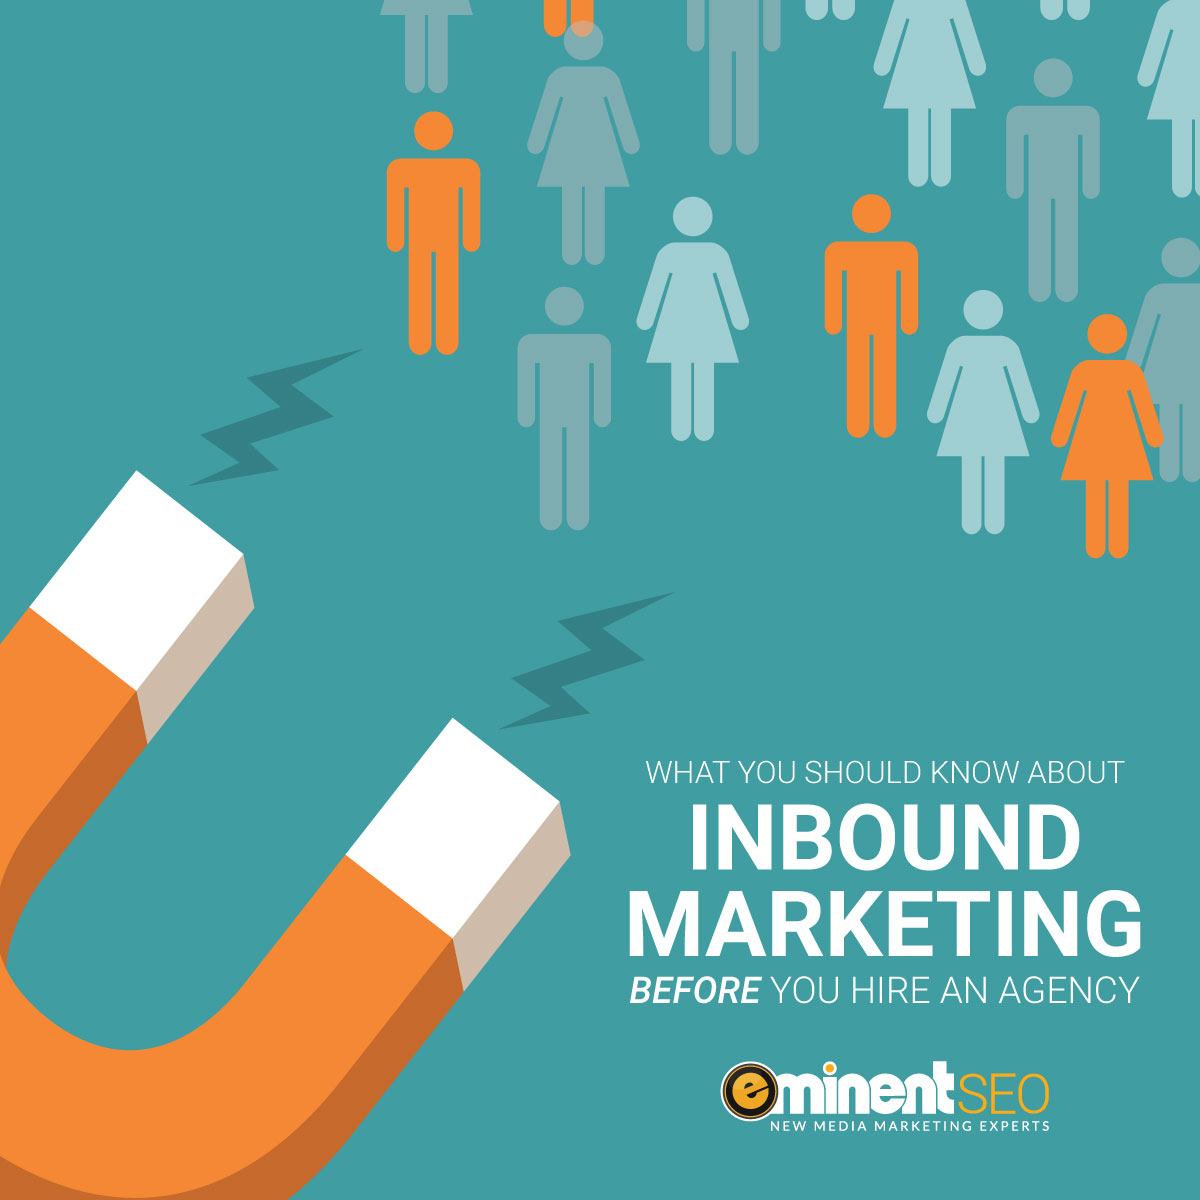 Know About Inbound Marketing Before Hiring Agency - Eminent SEO